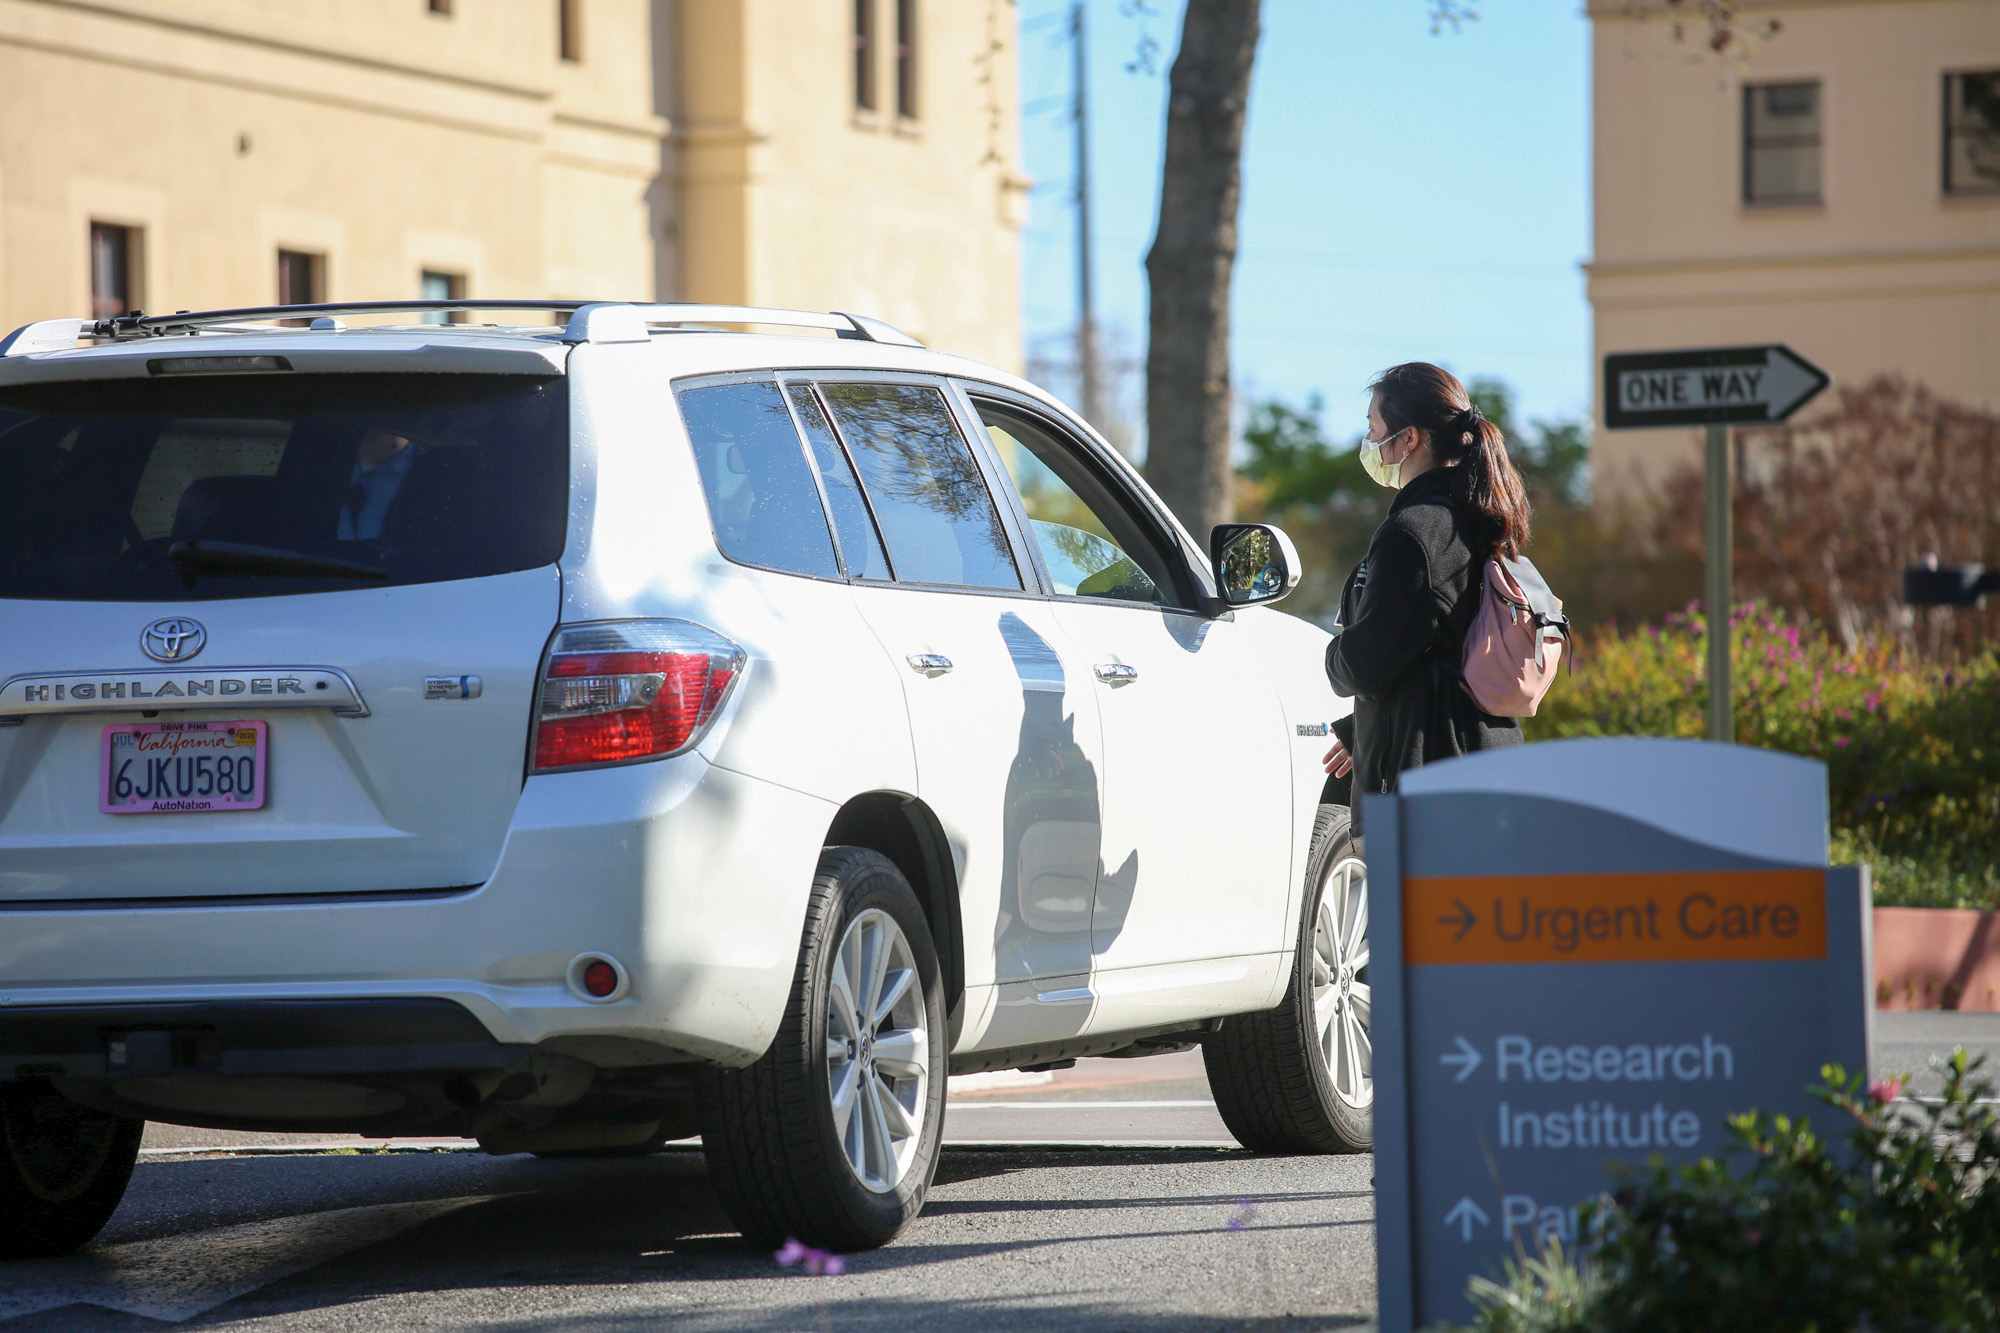 Sutter Health employees direct traffic at their facility in Palo Alto on March 19. Photo by Sammy Dallal.